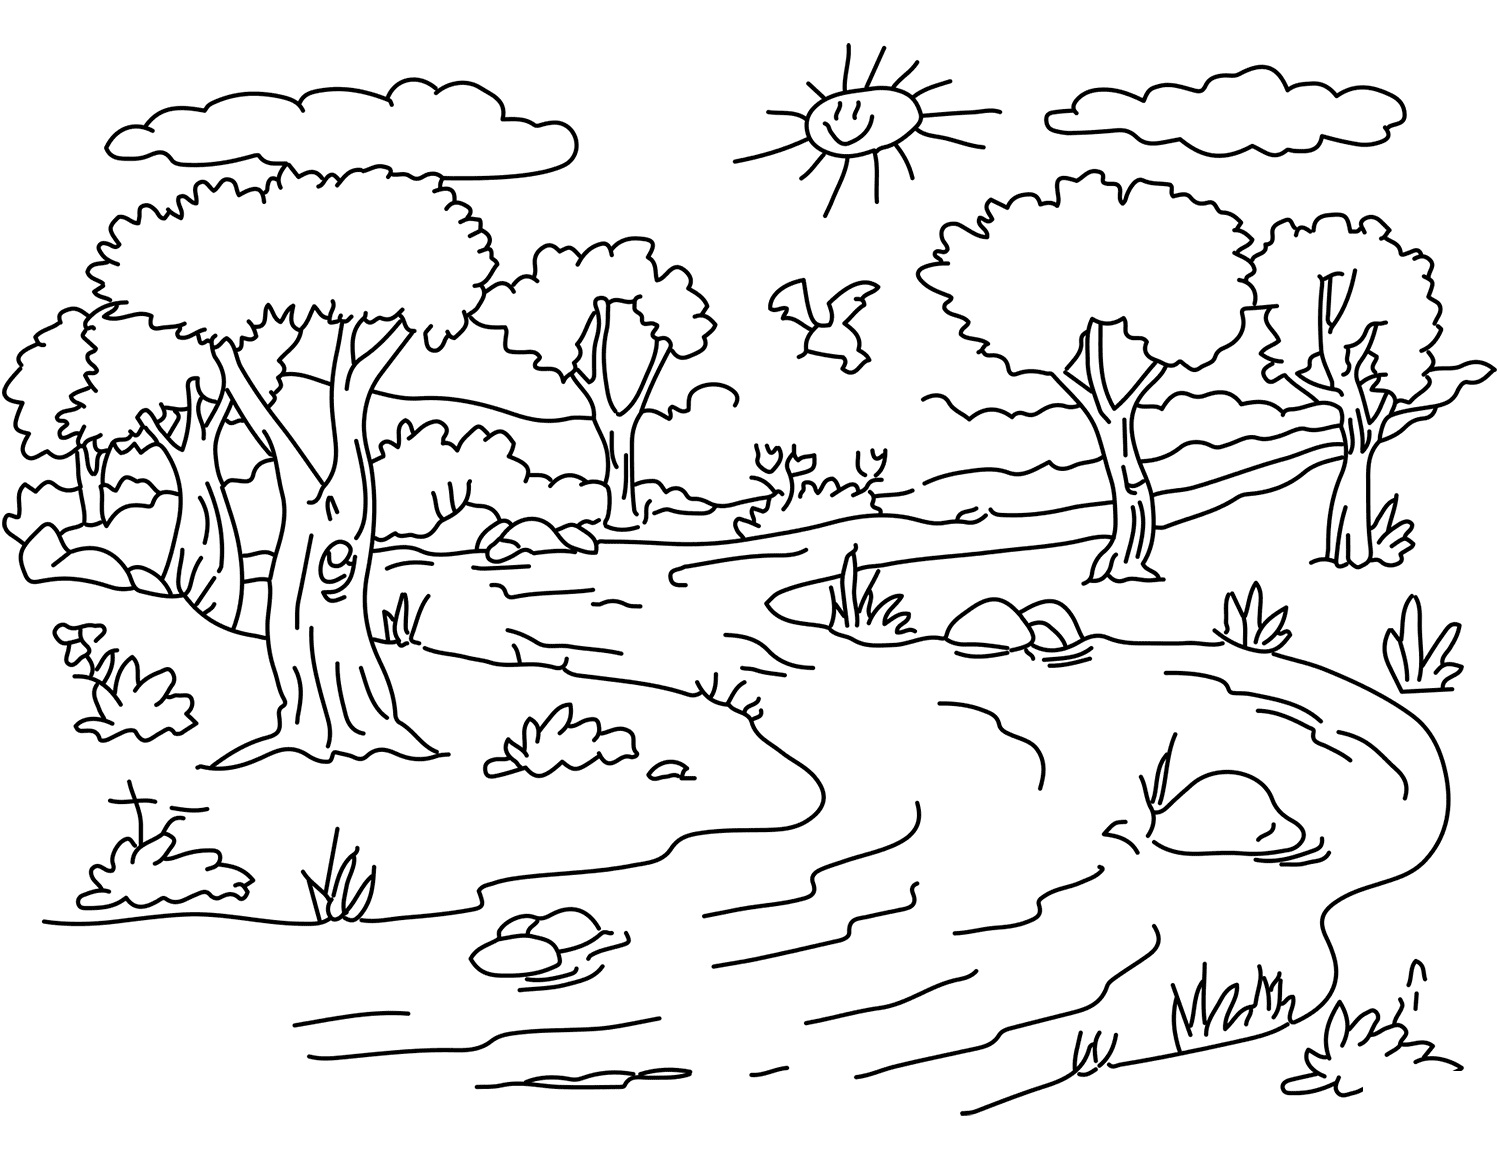 Coloring Pages Nature. Landscape, forest, mountains, sea